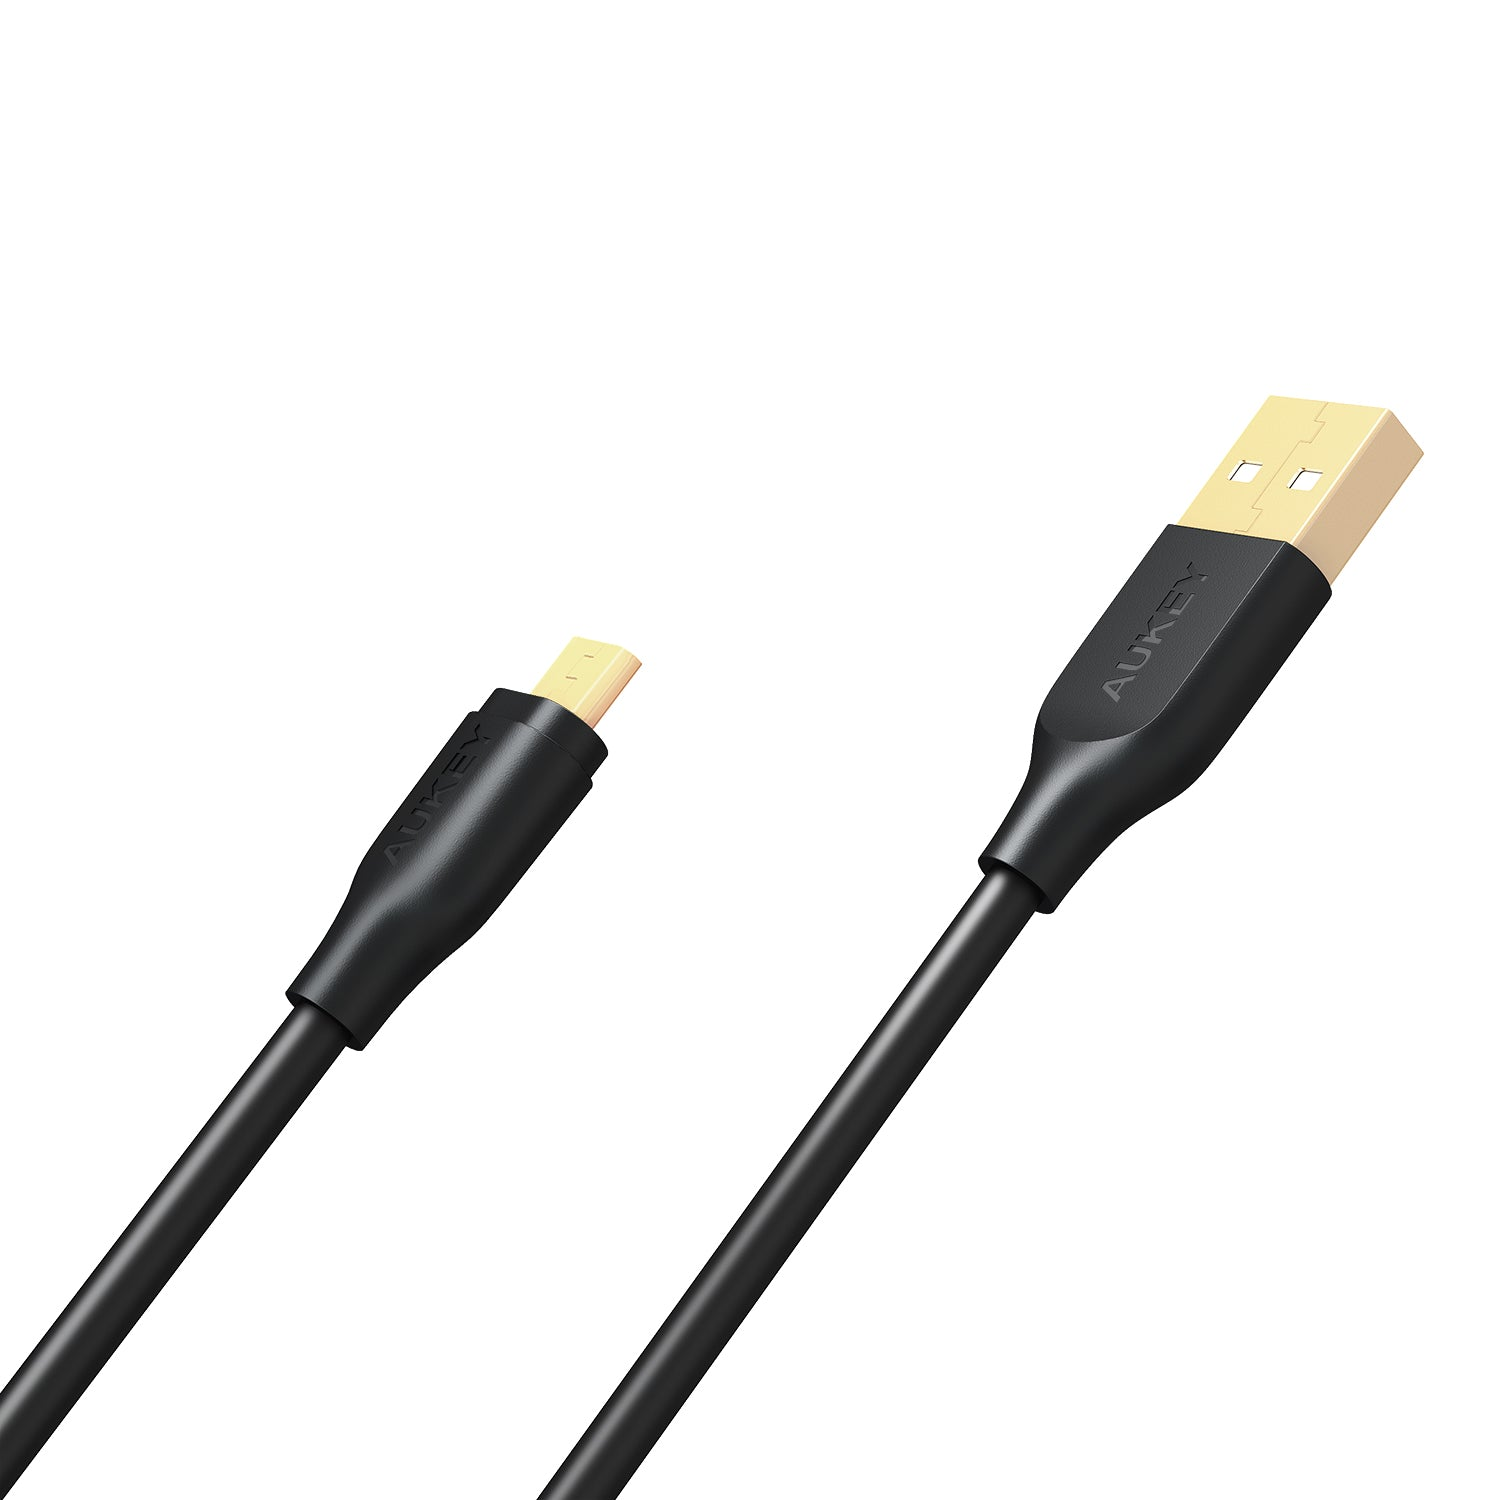 AUKEY CB-MD1 USB2.0 Micro USB Cable 1m (Gold-plated)Black